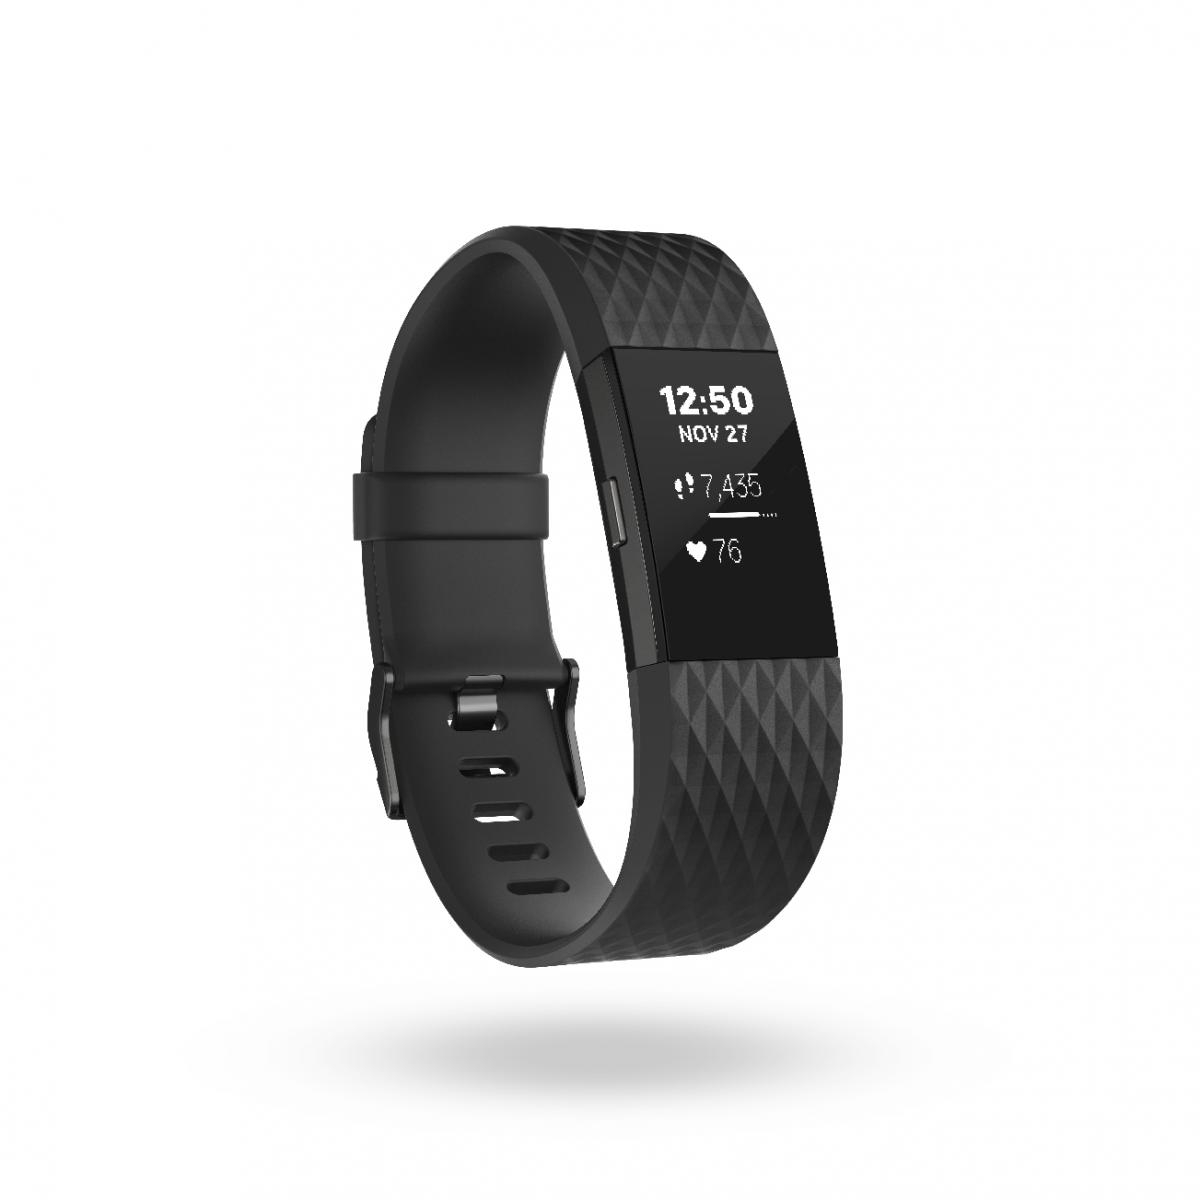 Fitbit And Google Have Entered A Partnership Focused On Better Leveraging Wearables Cloud Based Technologies For Digital Health The Companies Announced